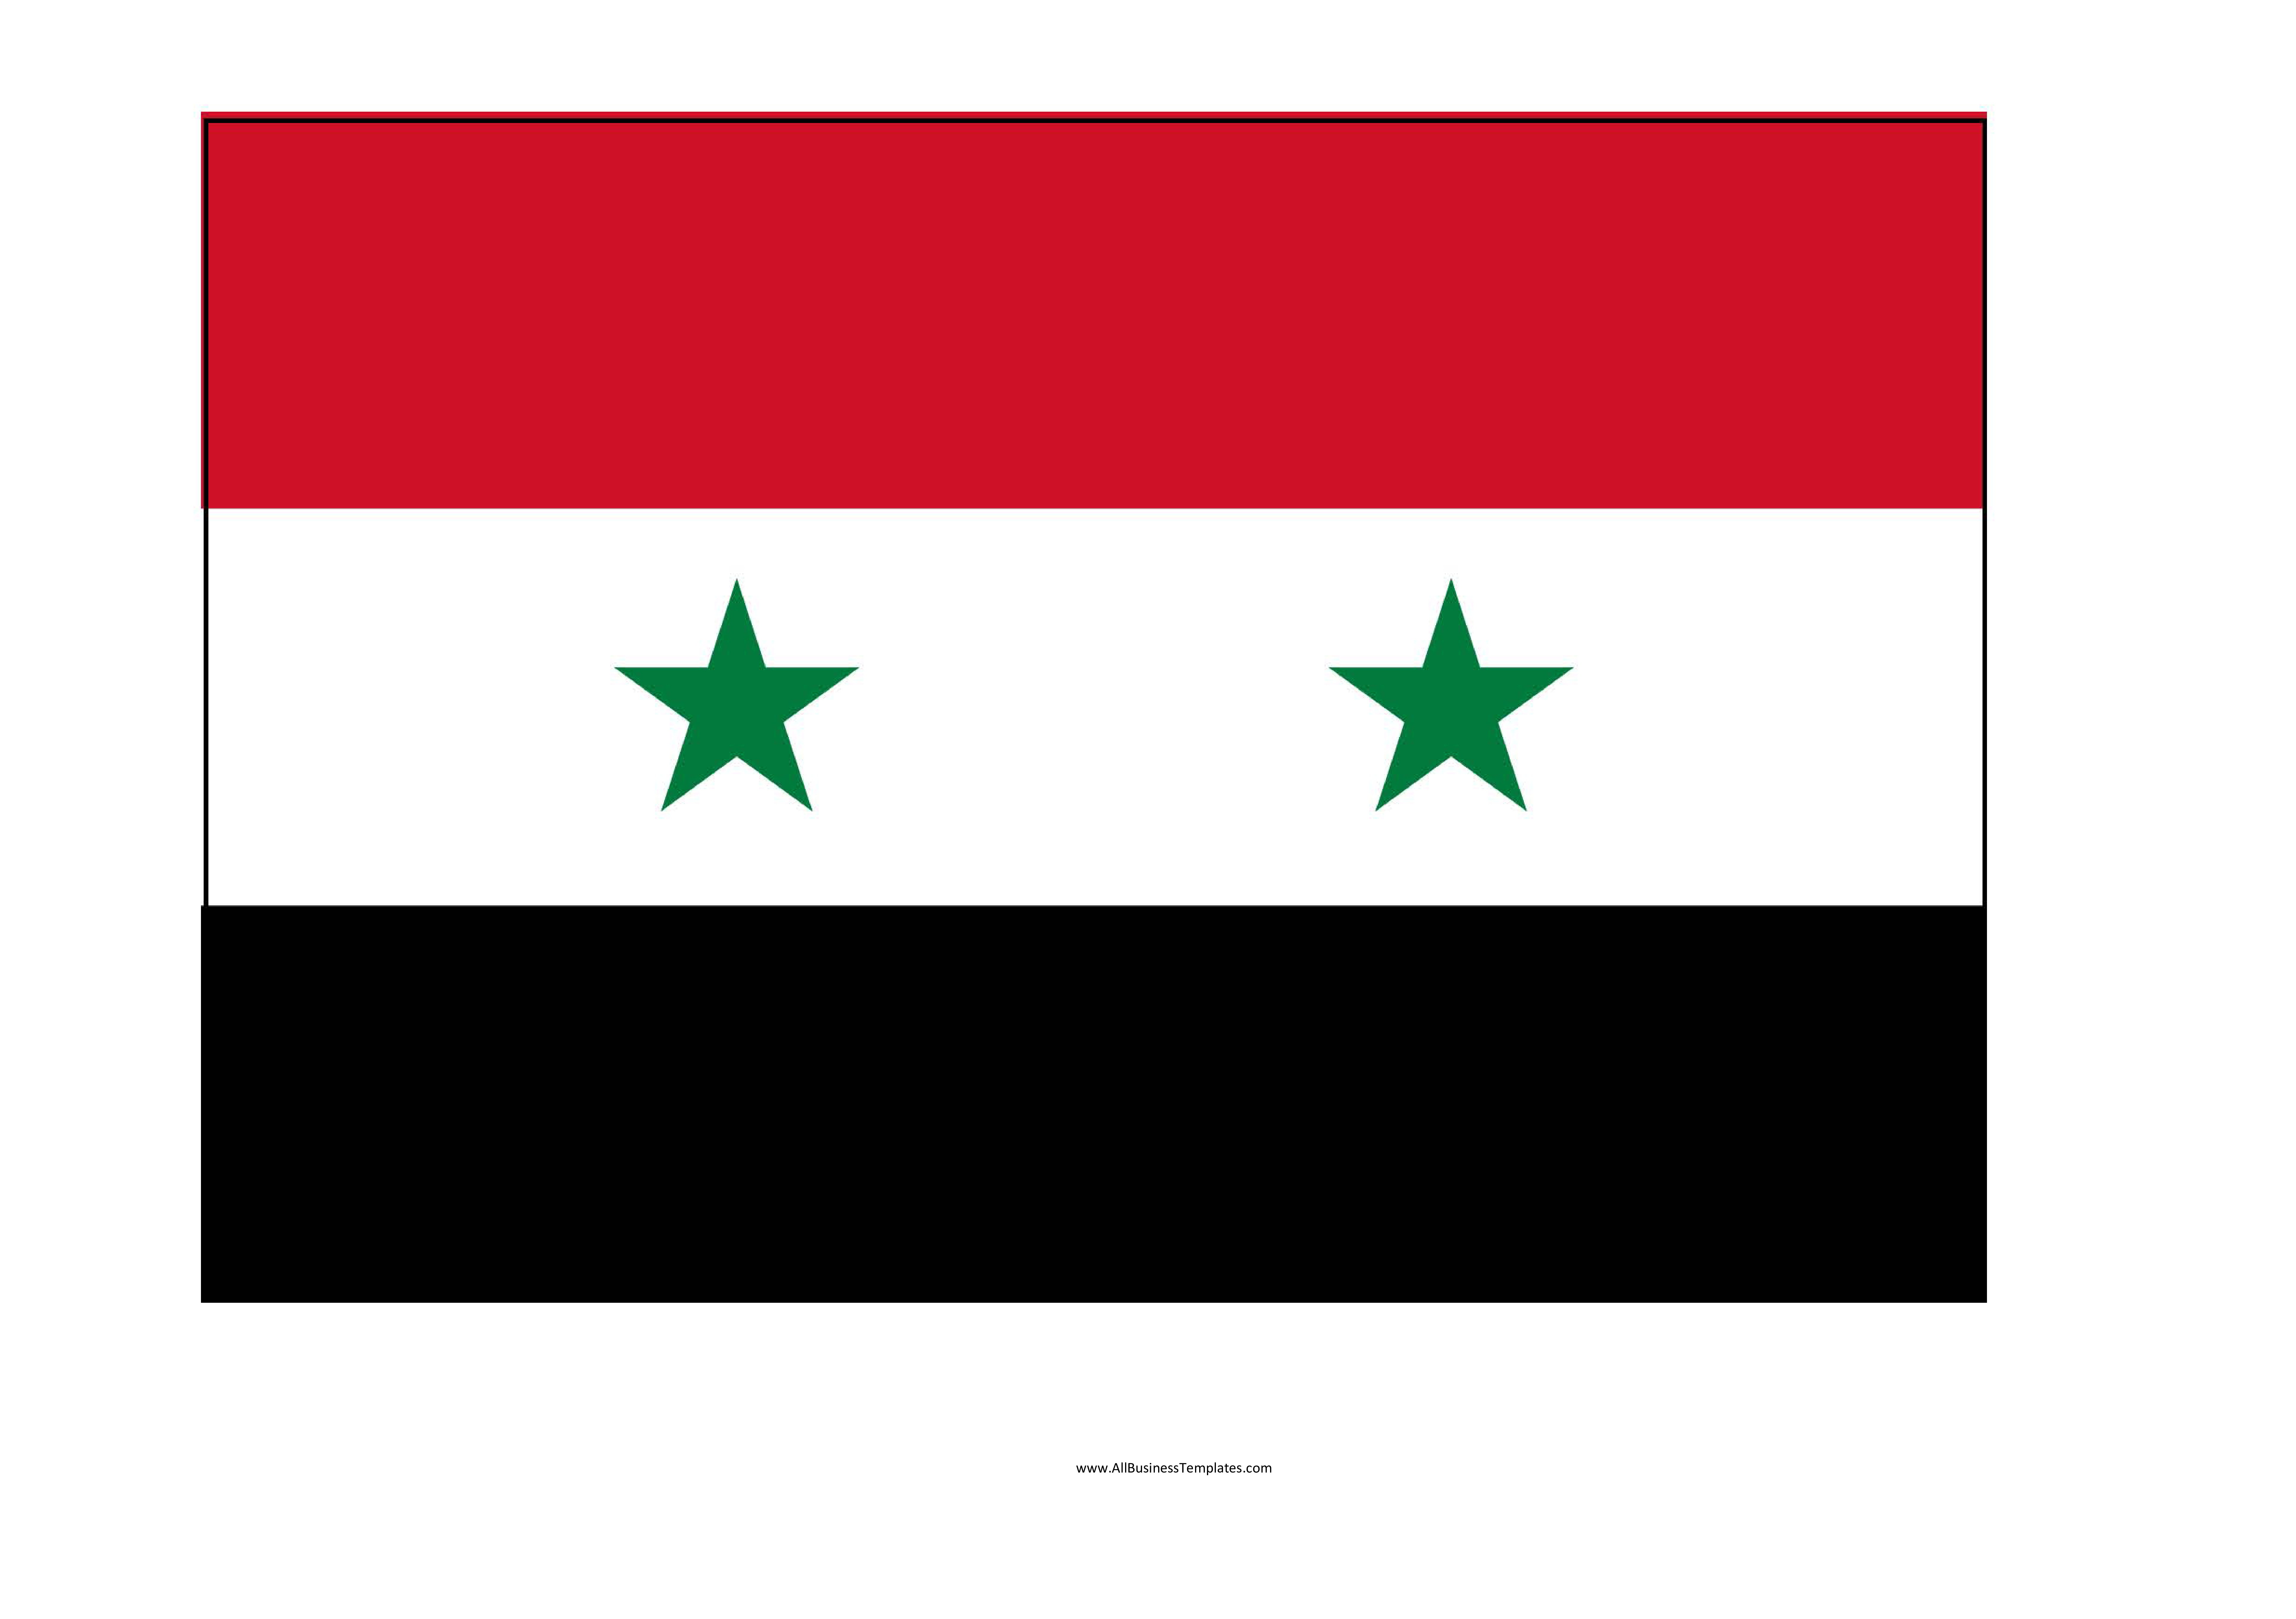 Syria Printable Flag Download This Syria Printable Template A4 Flag Syria Map In Flag Colors Syria Flag Outline Flag Template Templates Template Printable